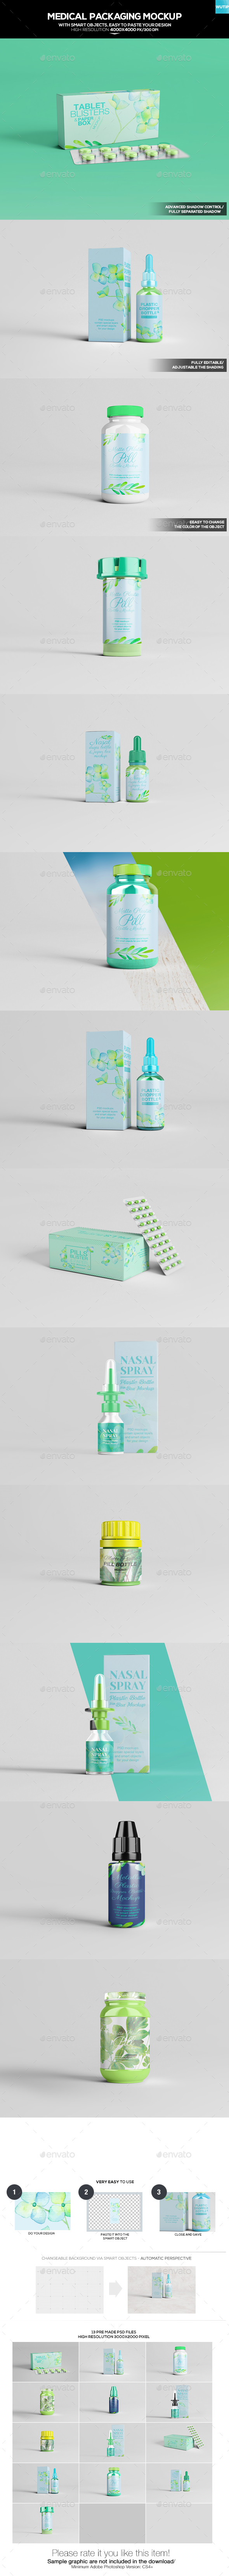 Medical Packaging Mockup - Miscellaneous Packaging